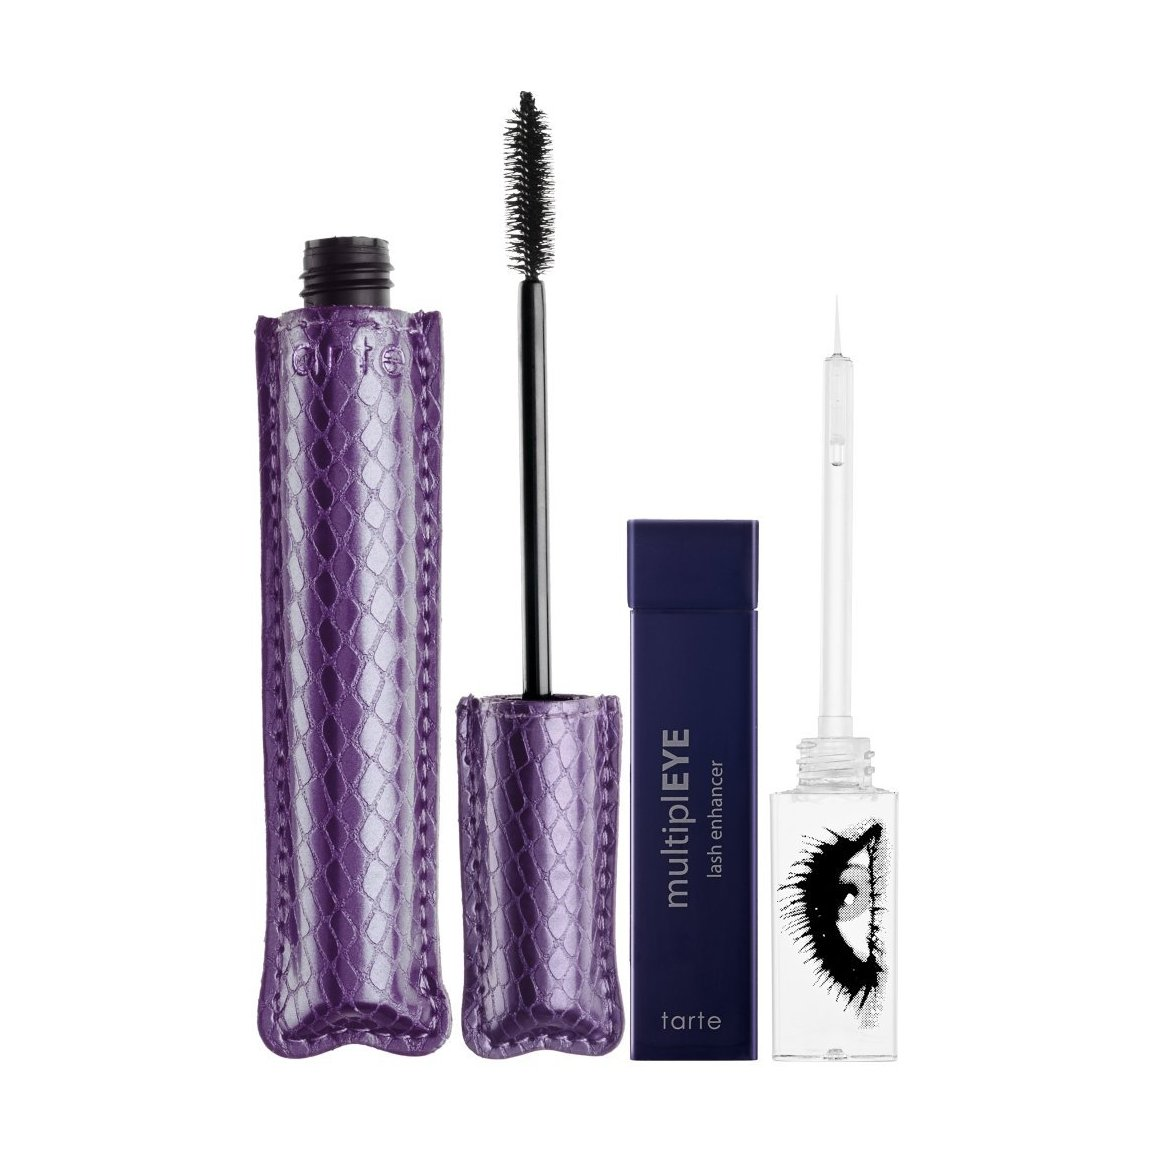 Tarte MultiplEYE Lash Enhancer And Lights, Camera, Lashes! Natural Mascara  Set | Beautylish